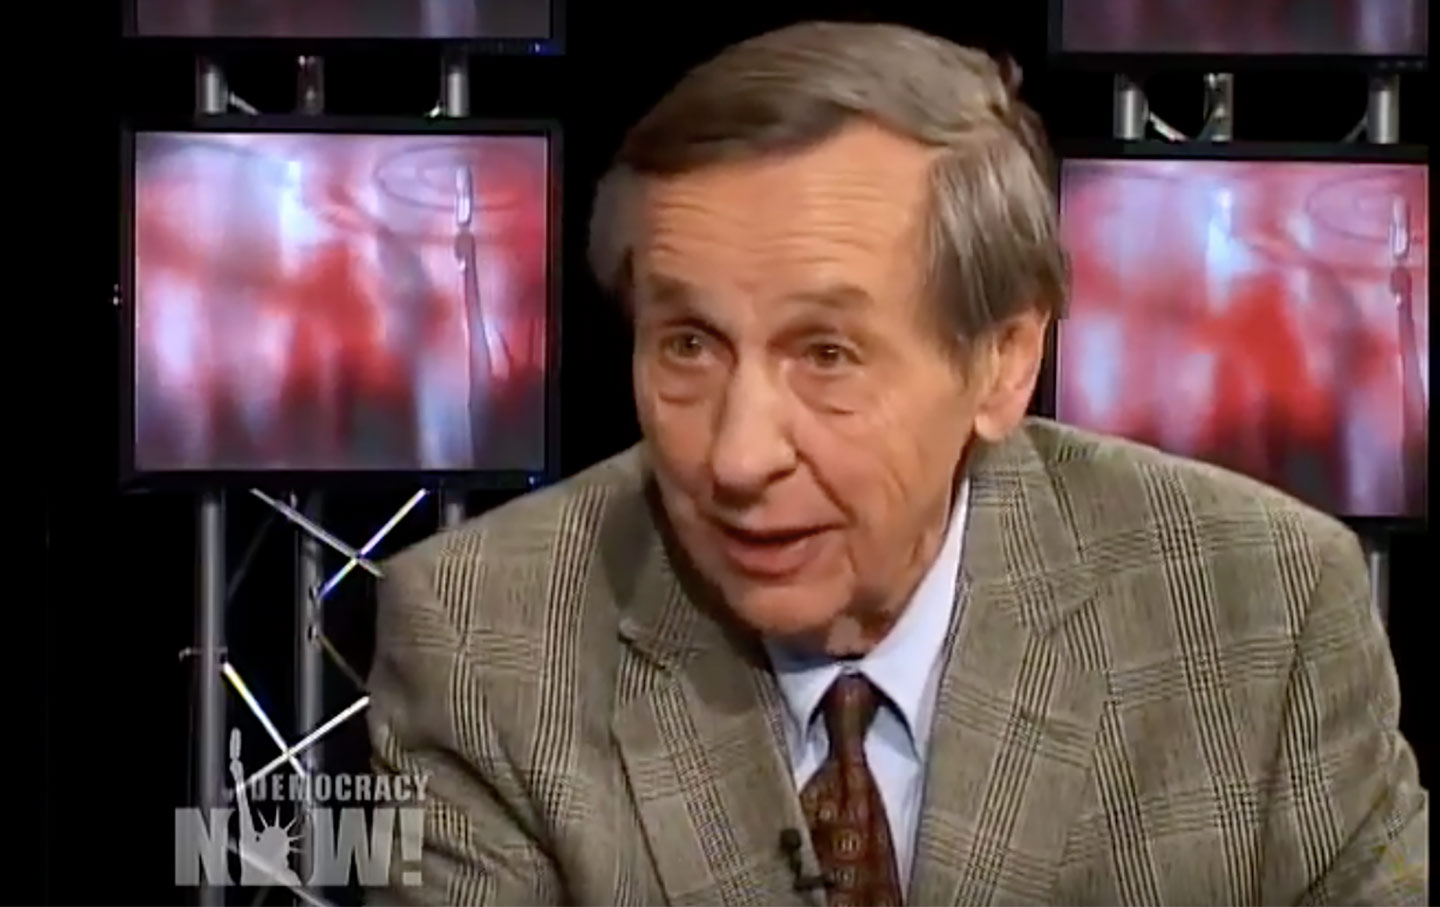 William Greider know what without saying anything the Democratic Party